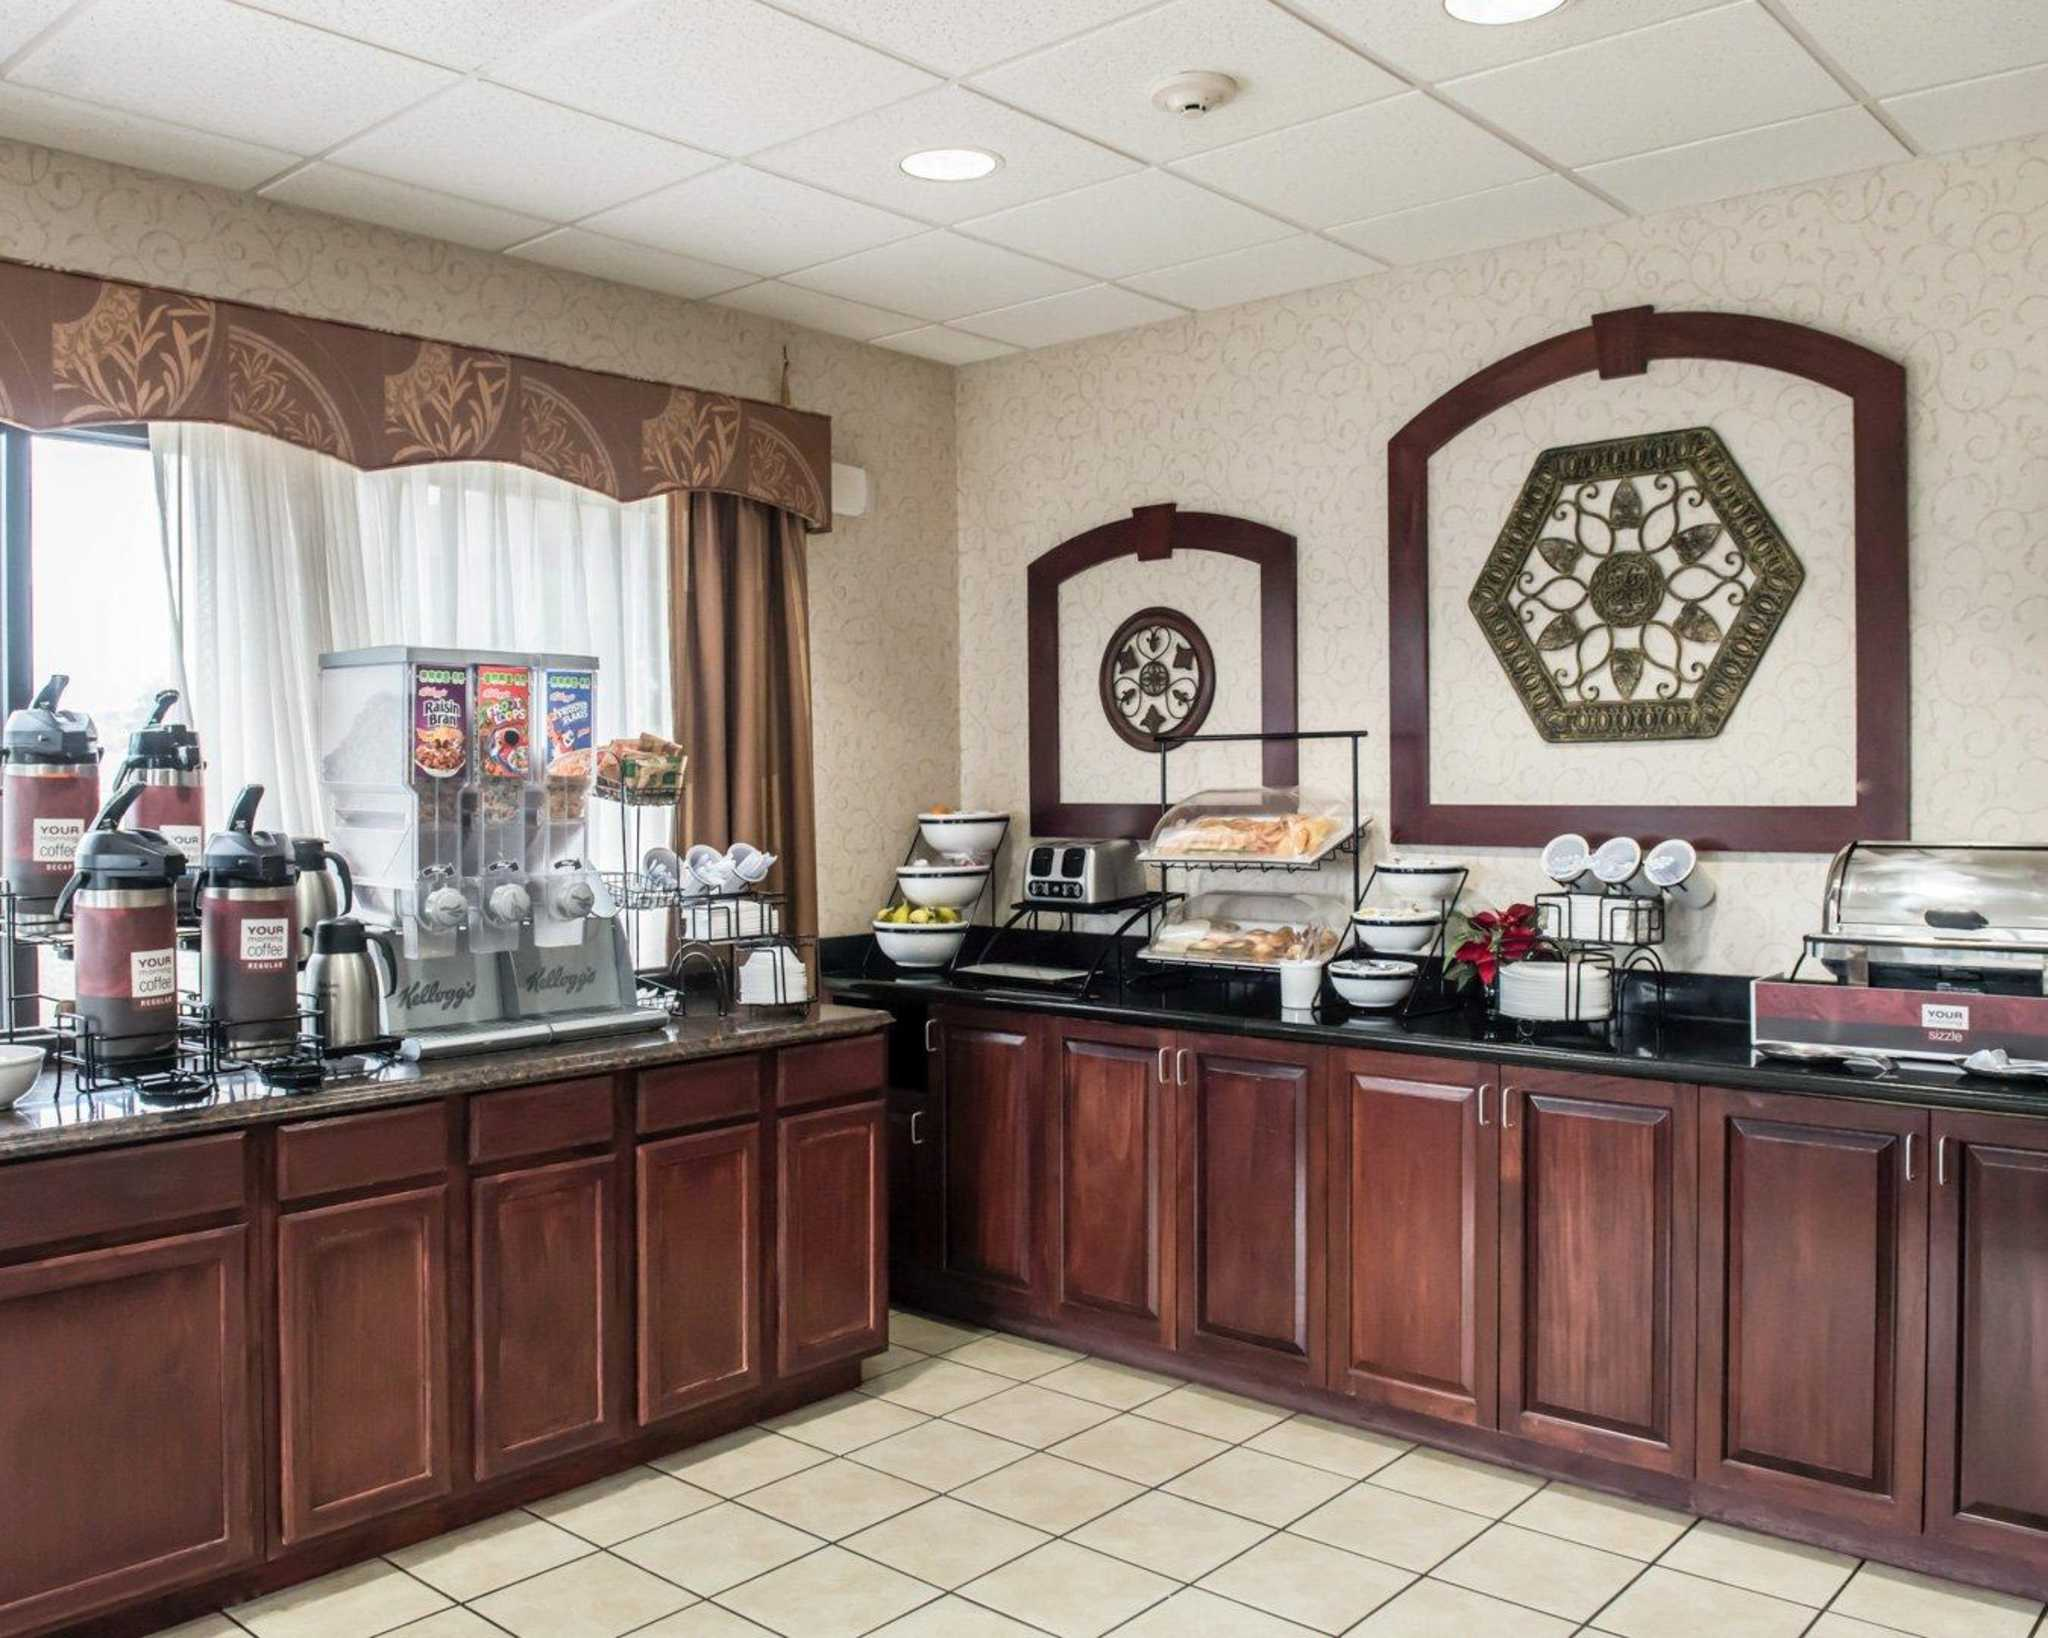 Comfort Inn & Suites Midway - Tallahassee West image 22